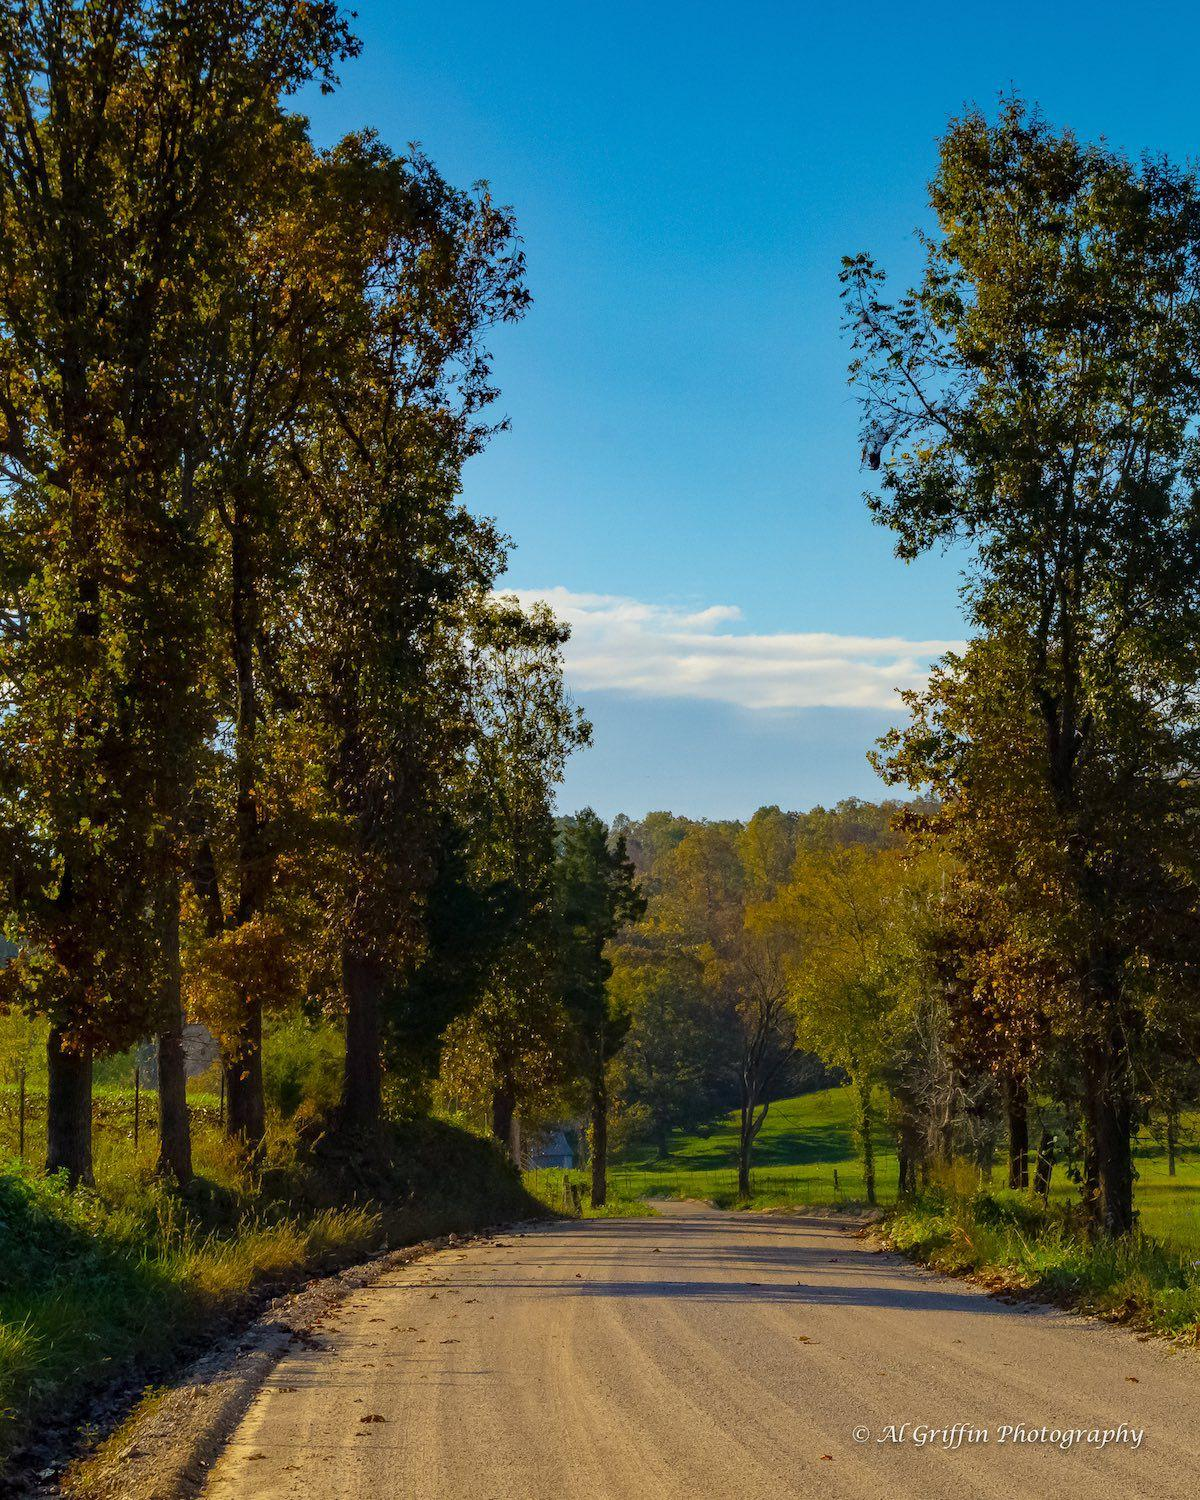 The Road to Shawnee Bluff Winery on the Niangua